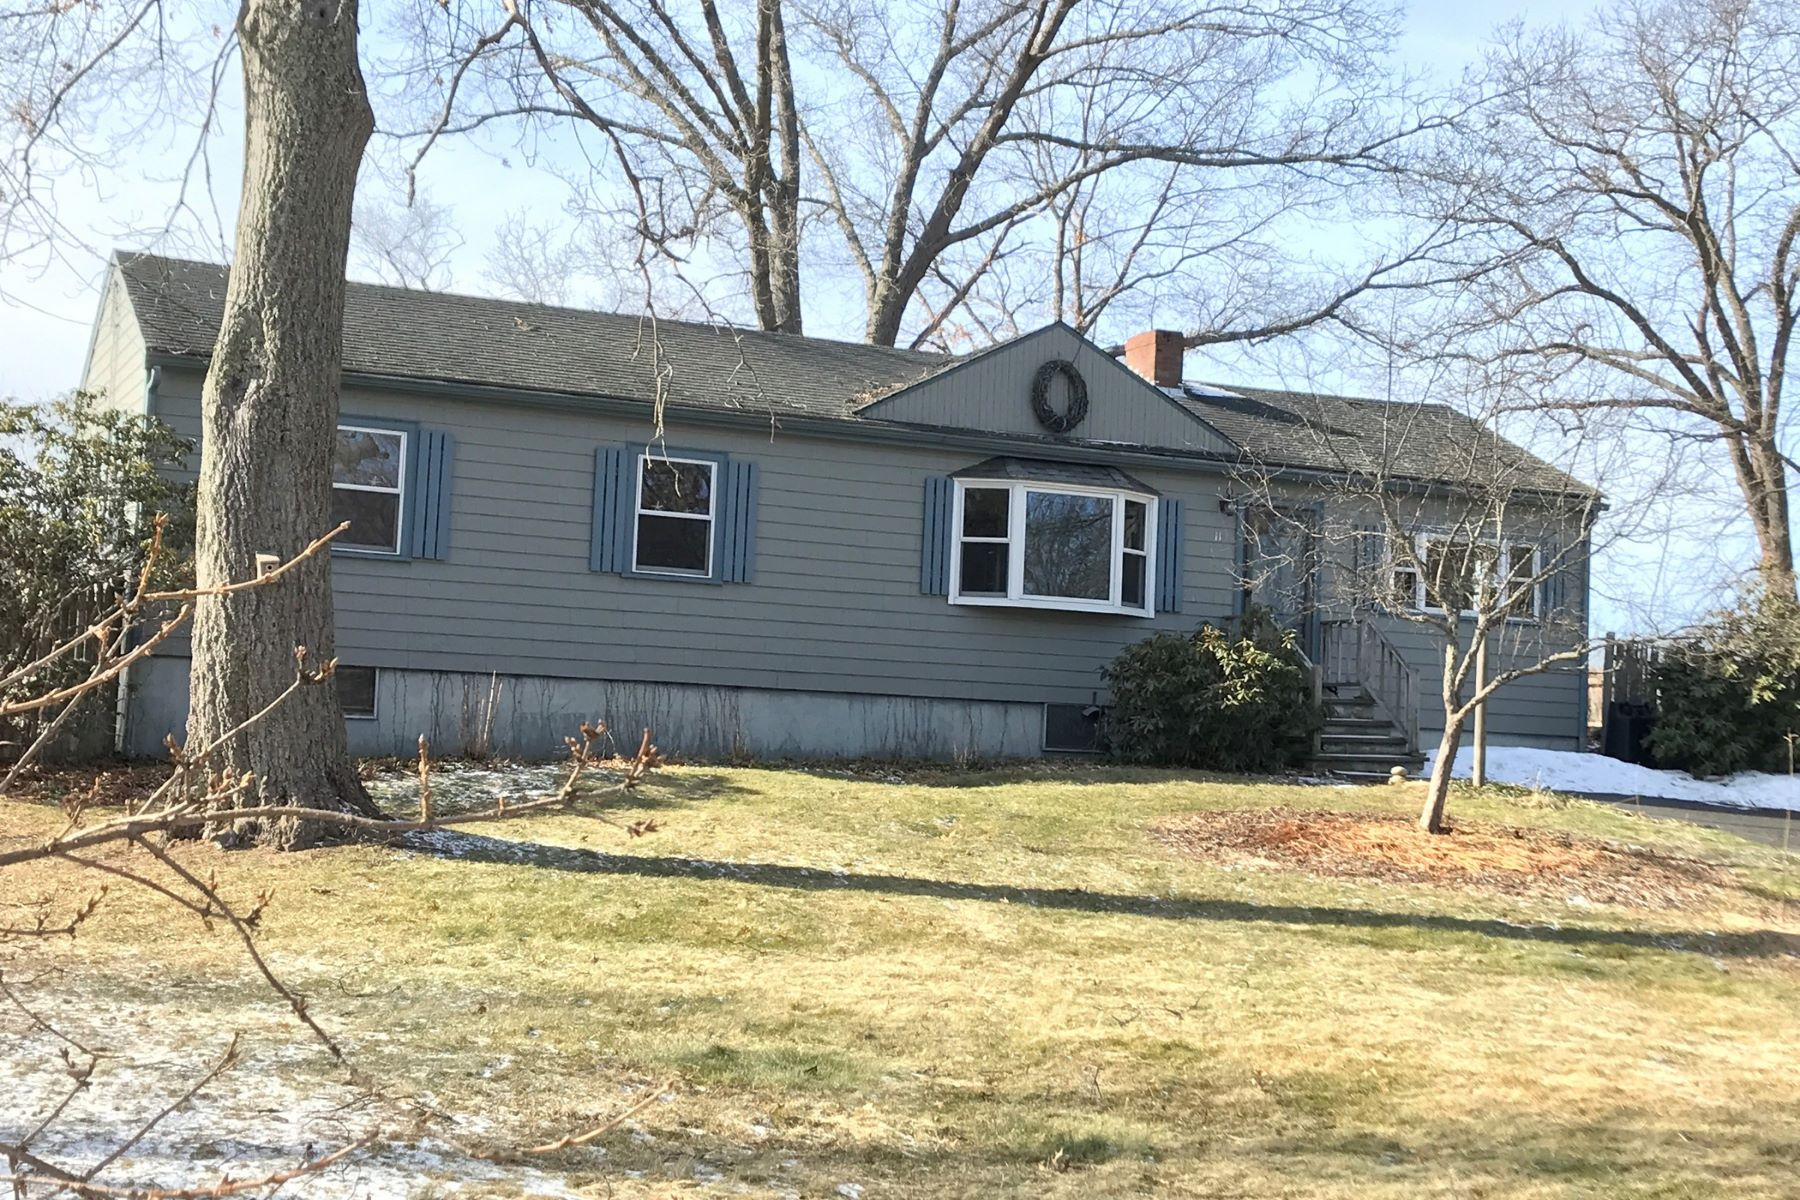 Single Family Home for Sale at 113 Peter Spring Road, Concord 113 Peter Spring Rd, Concord, Massachusetts, 01742 United States